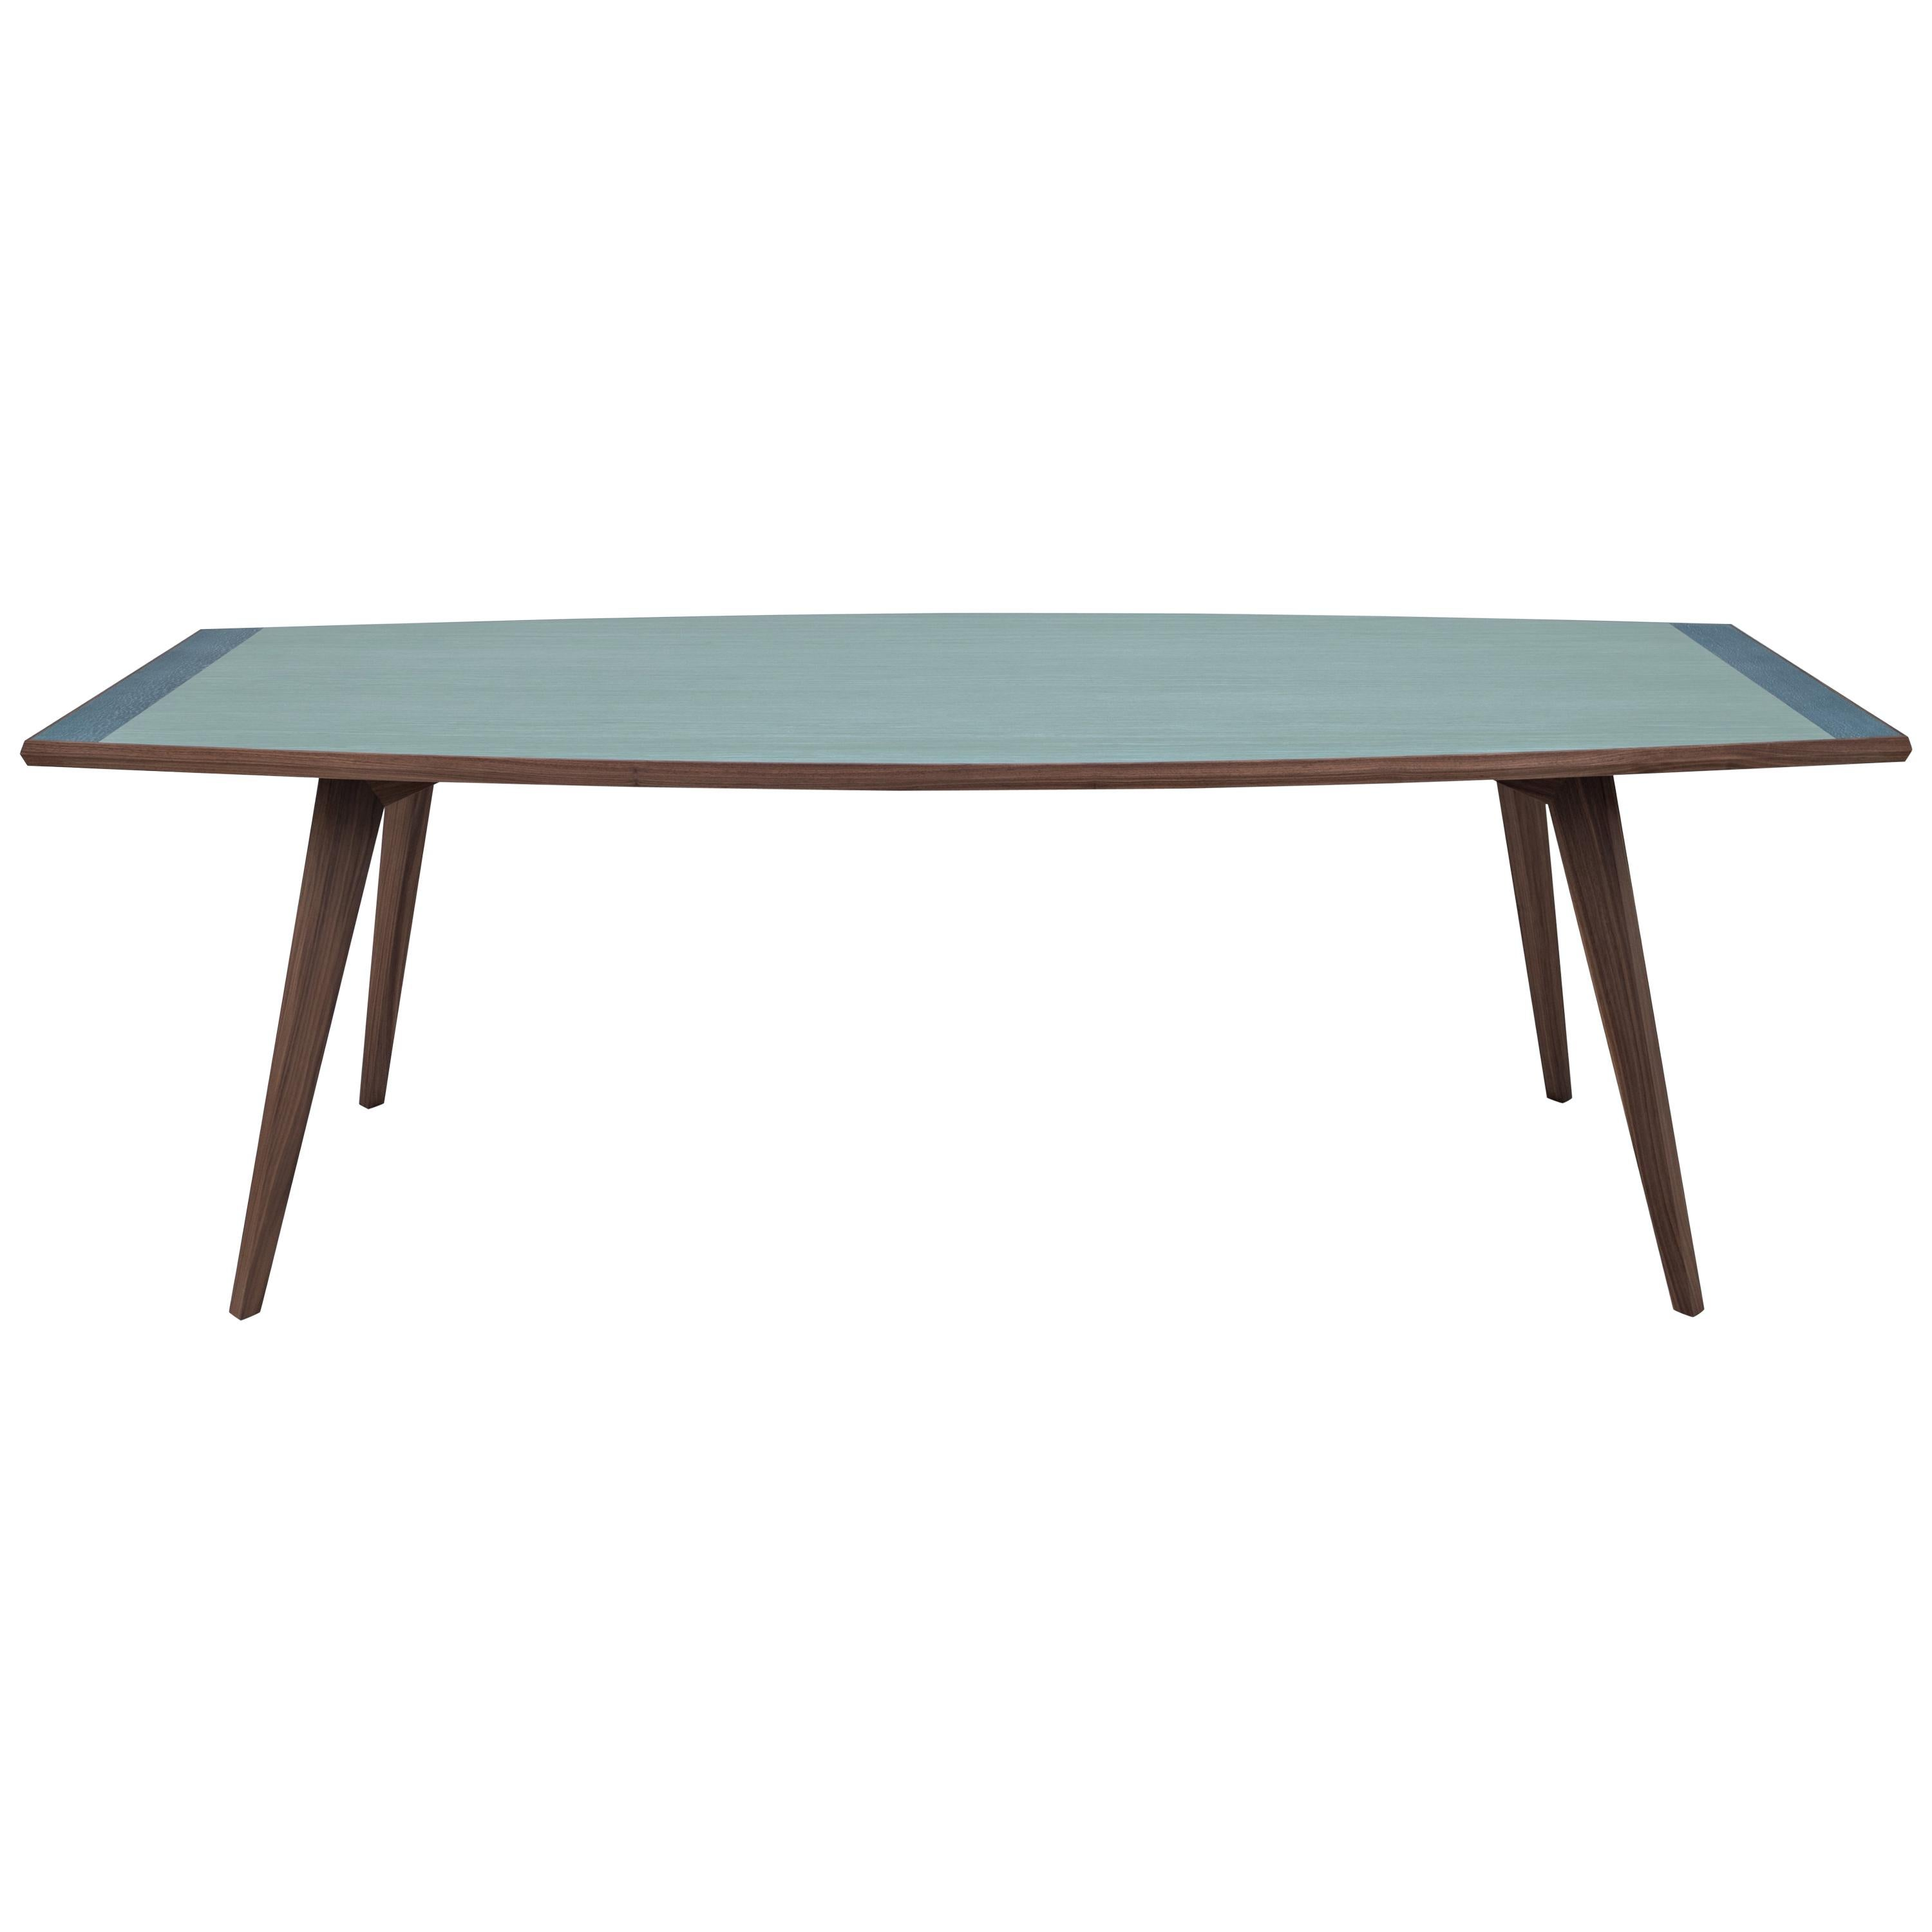 Aroon Luxury Table Wallnut Structure, Fabric Effect Top and Inlay on Two Sides